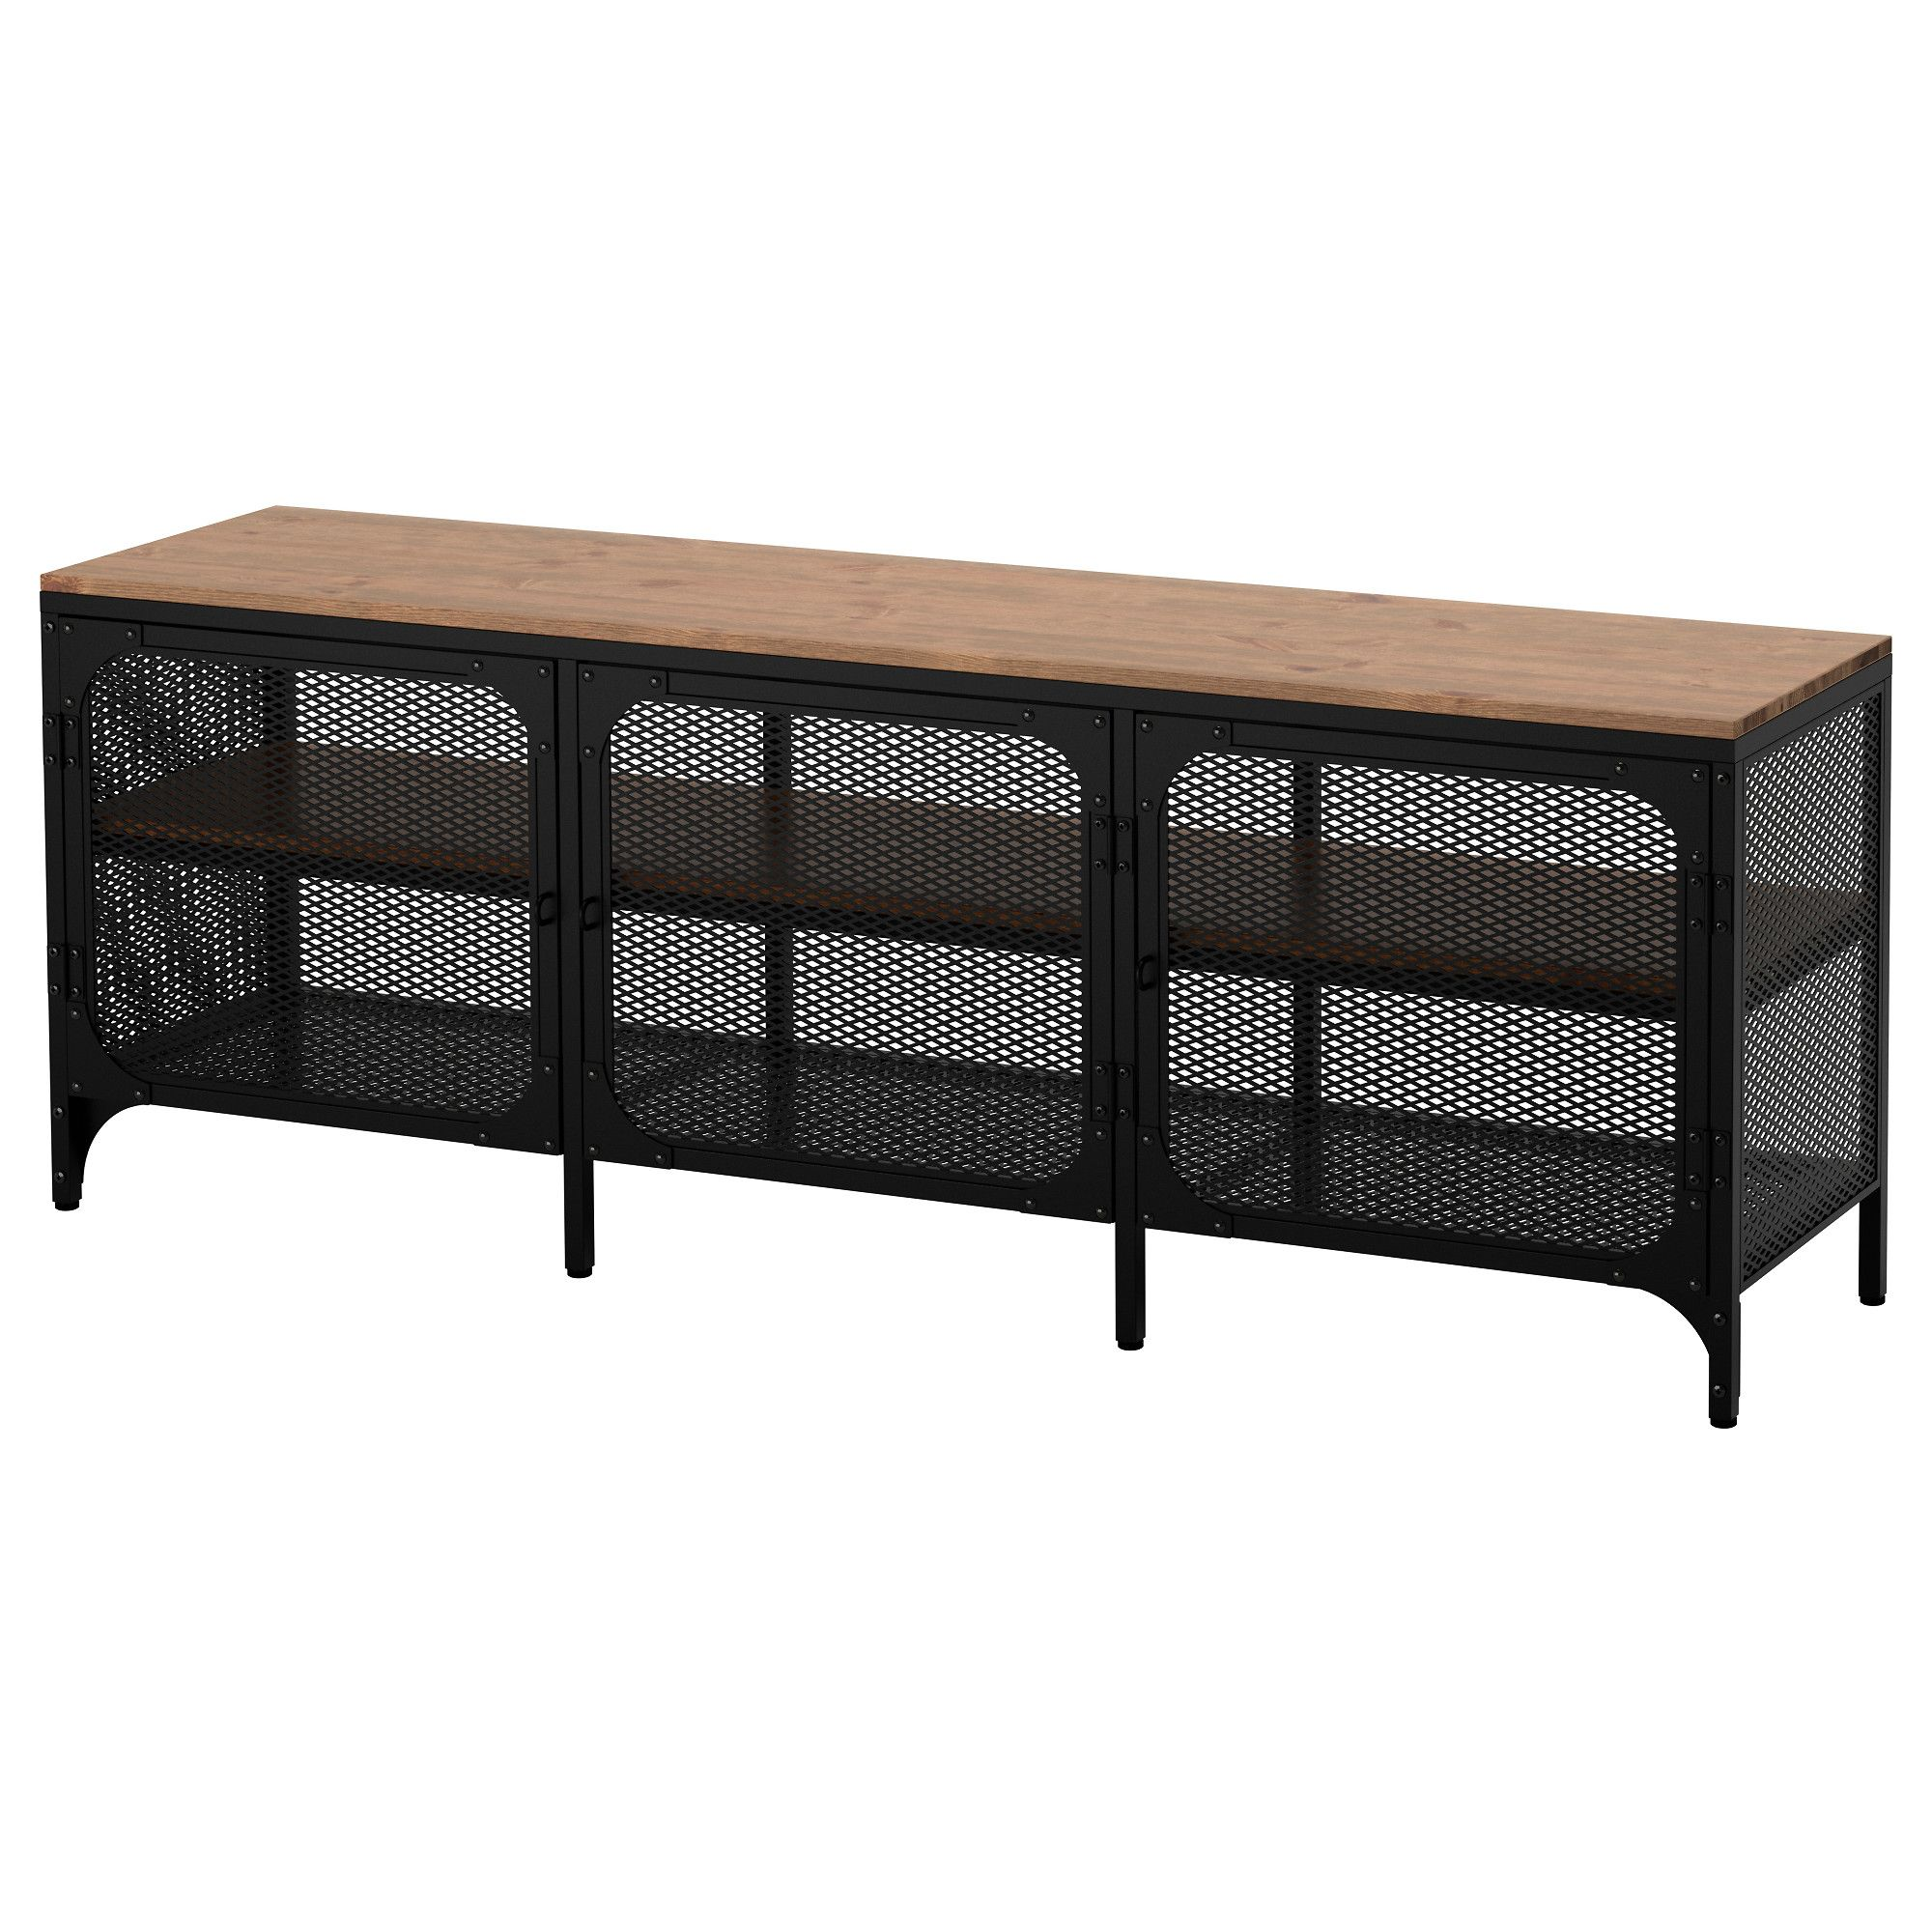 fj llbo tv bank schwarz jetzt bestellen unter. Black Bedroom Furniture Sets. Home Design Ideas